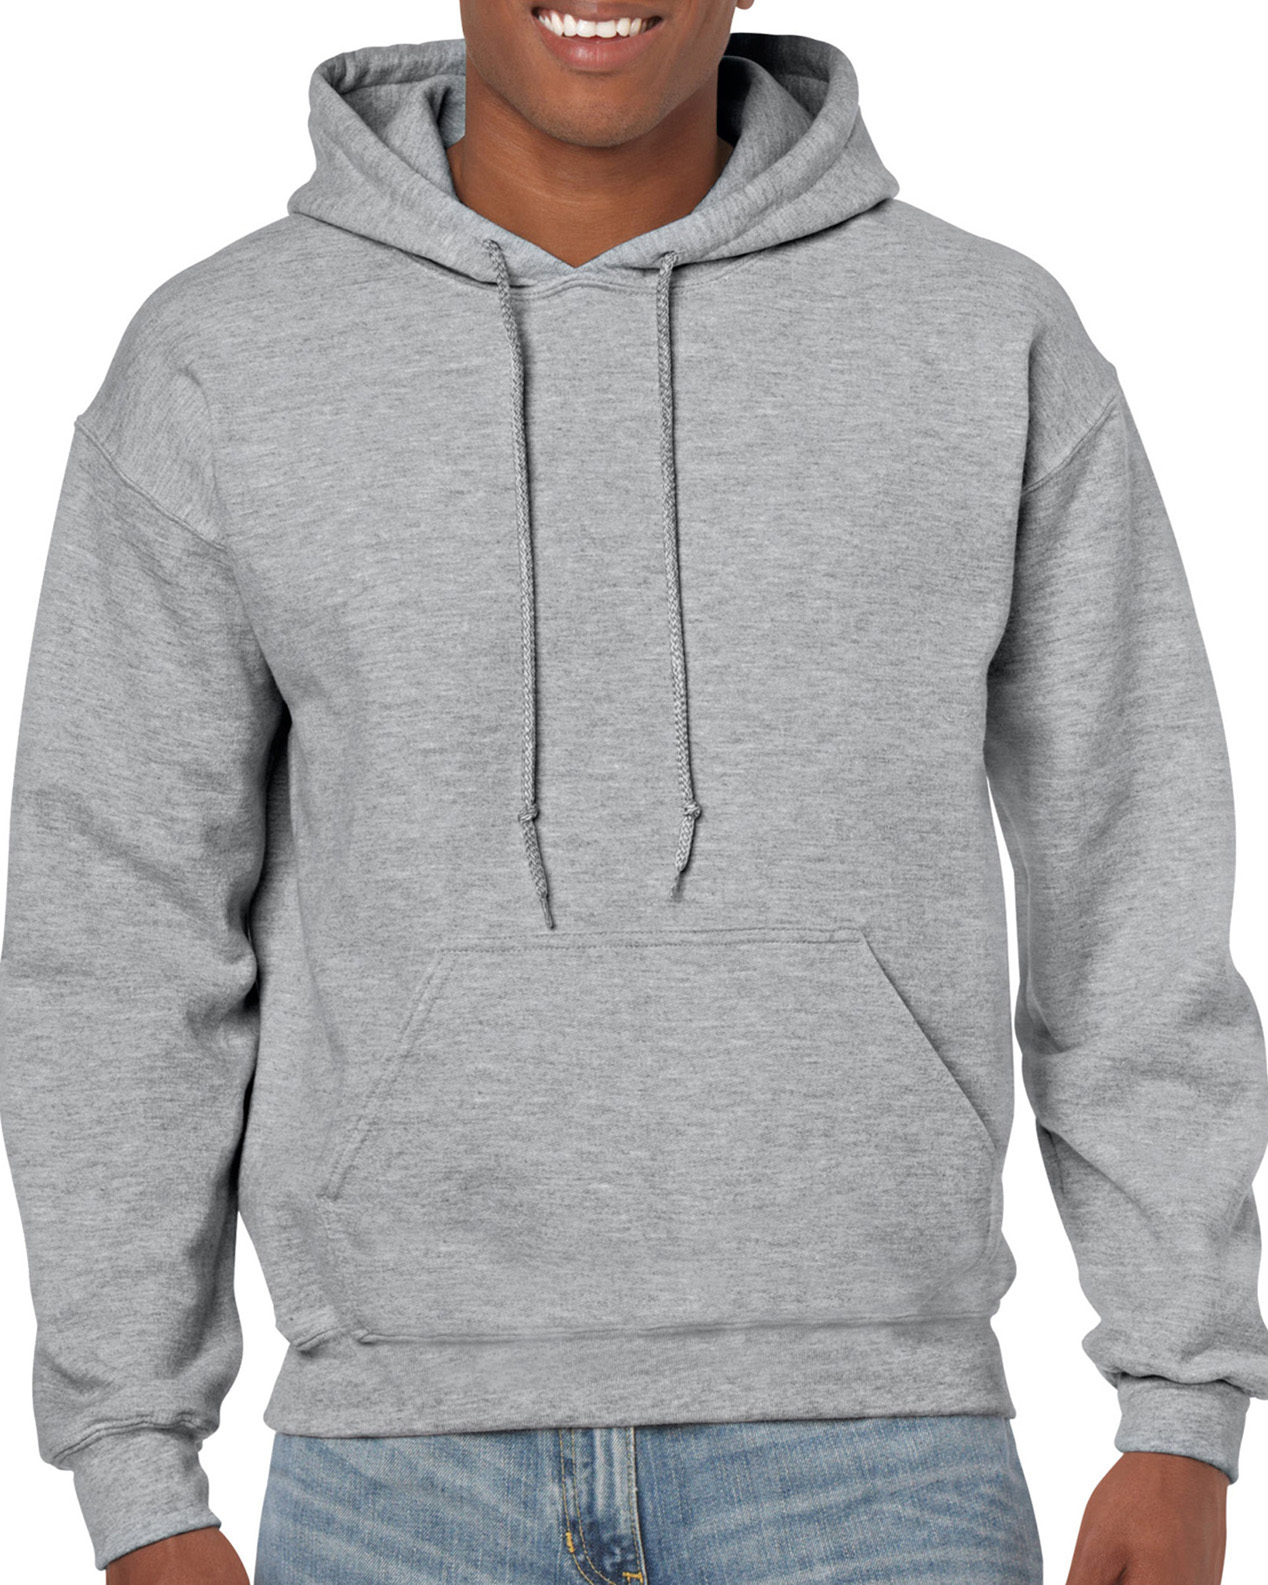 10c7ba61b15c3 18500 | Gildan® Heavy Blend™ | 8.0 oz/yd² | Adult Hooded Sweatshirt ...